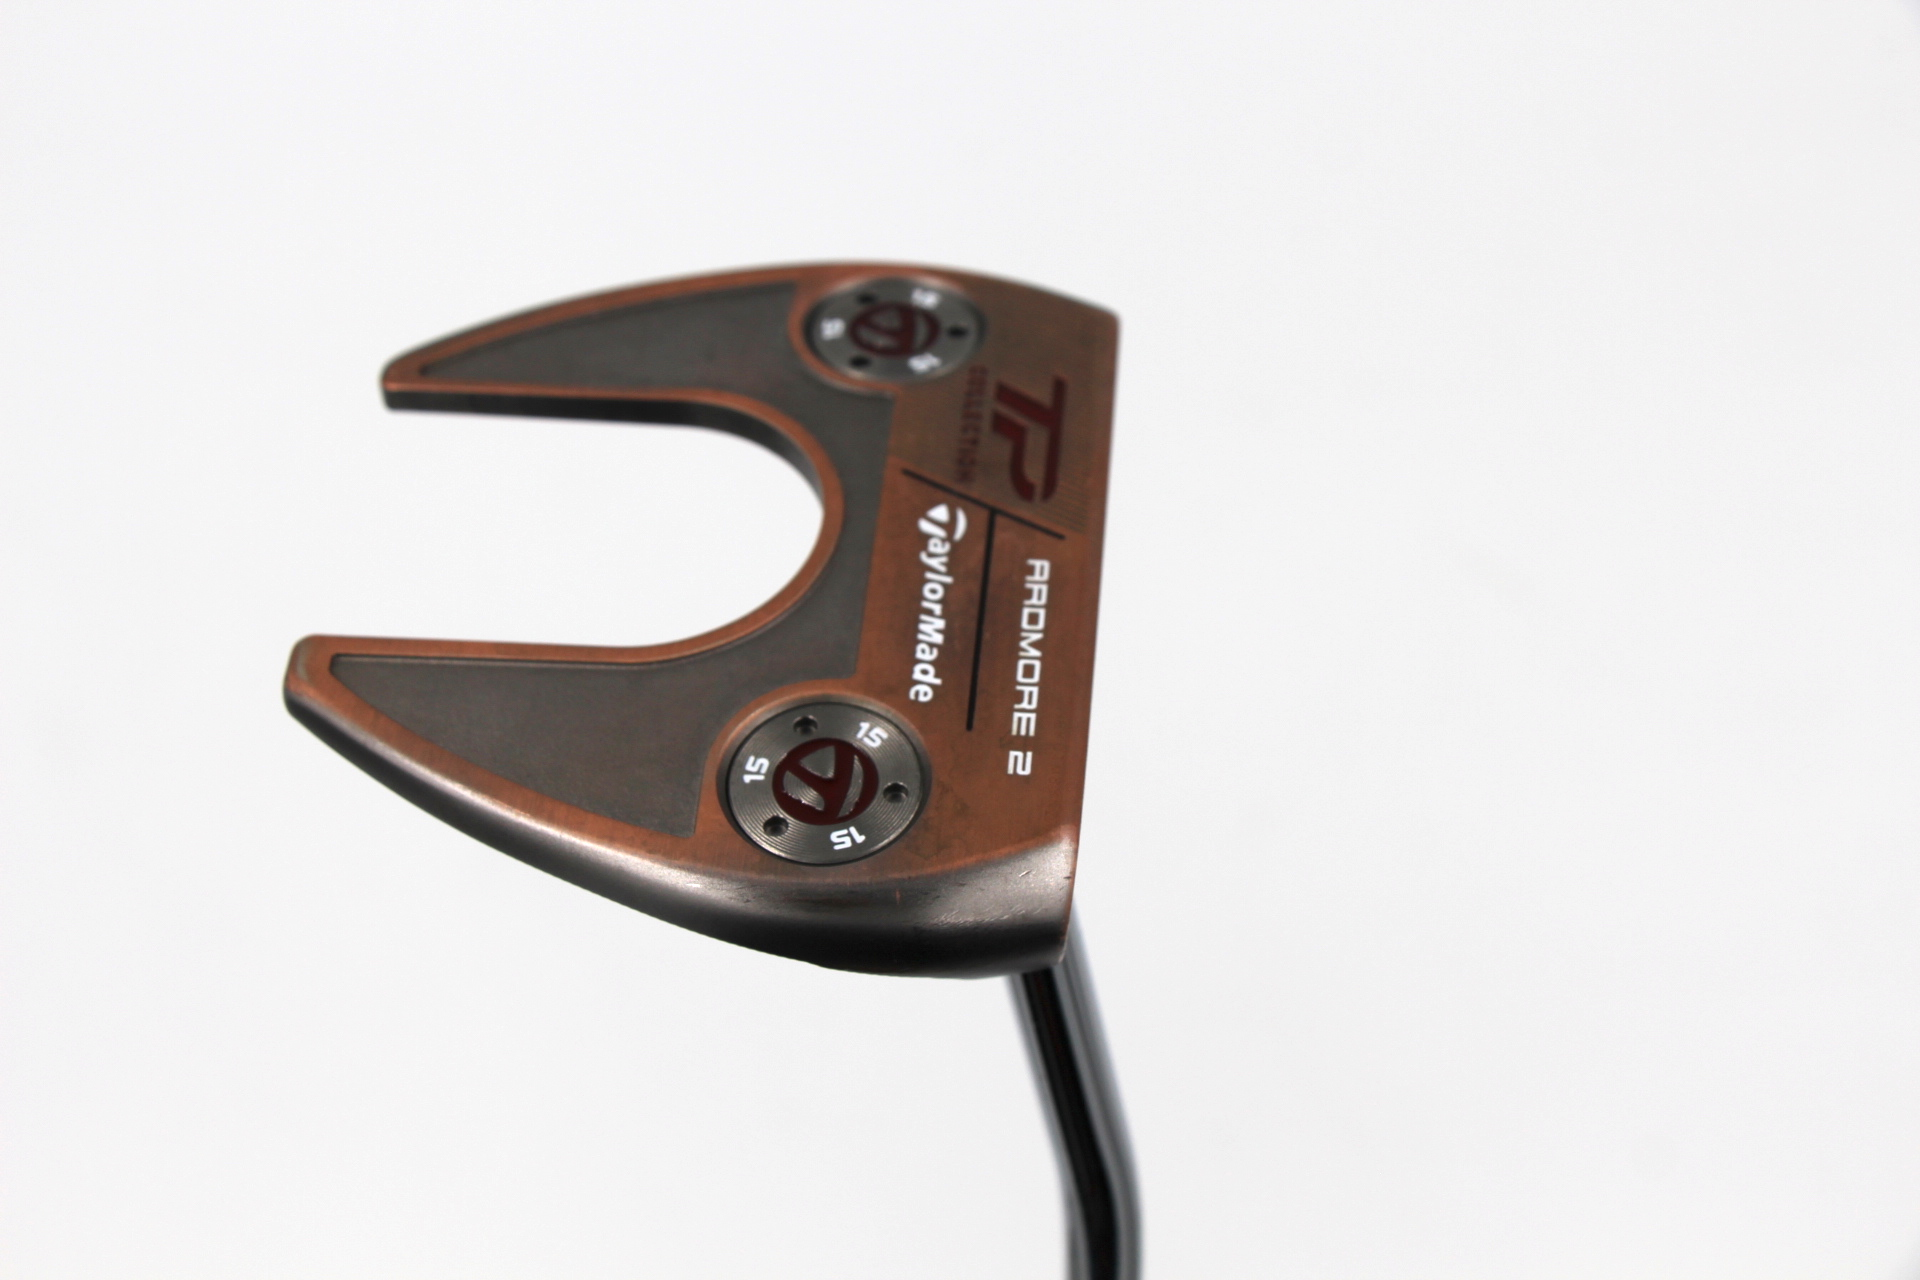 TaylorMade TP Collection Patina Ardmore 2 Putter